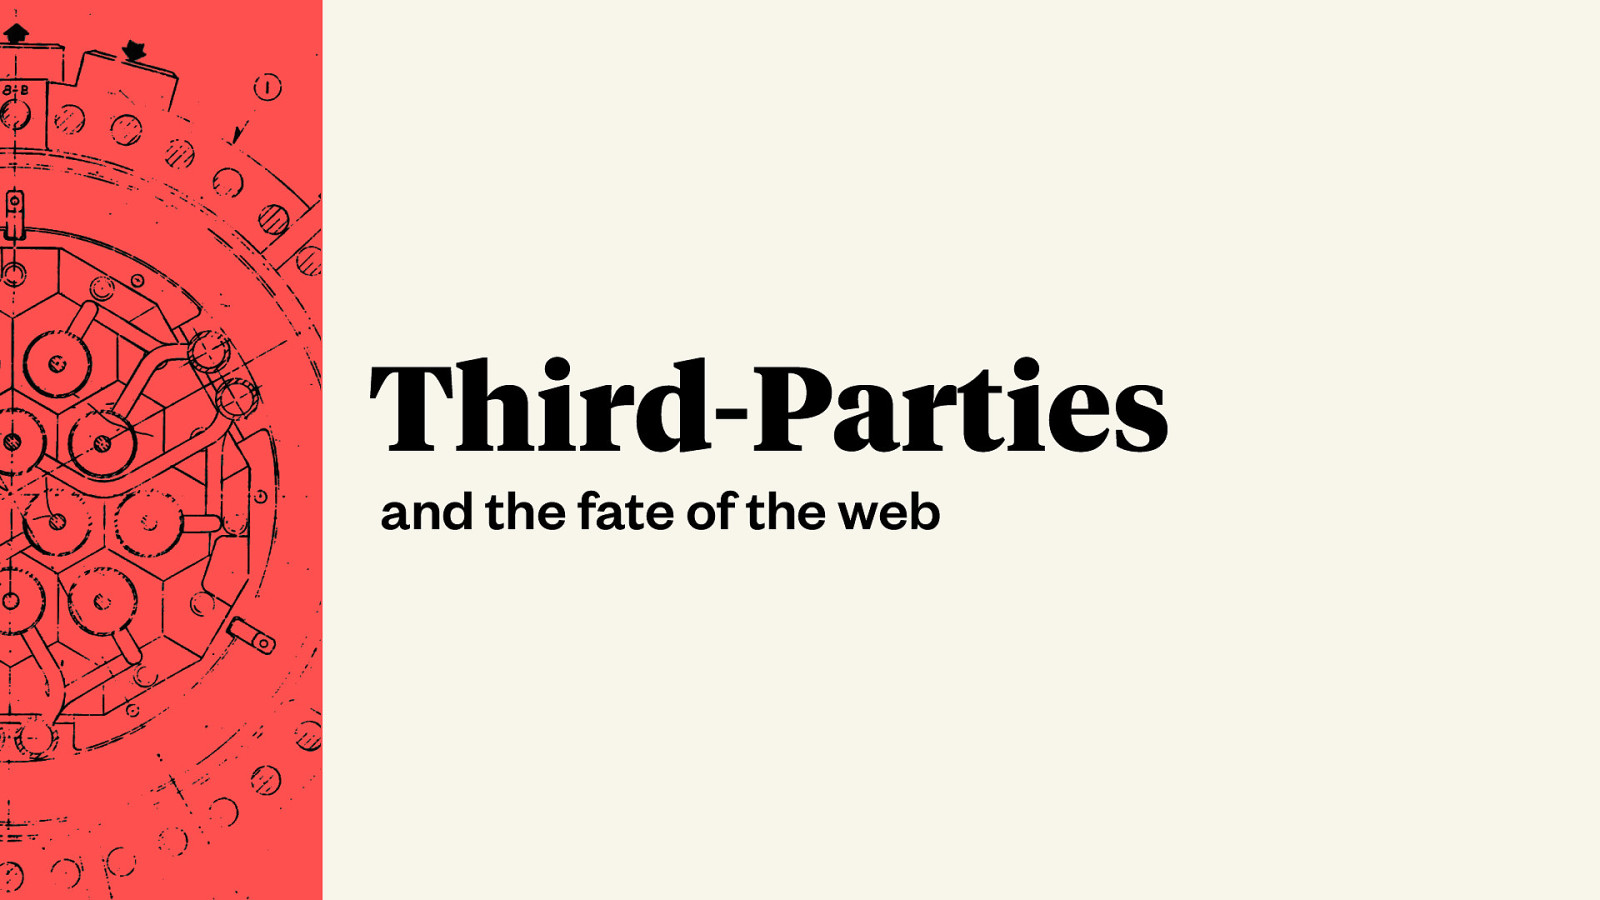 Third-Parties and the Fate of the Web